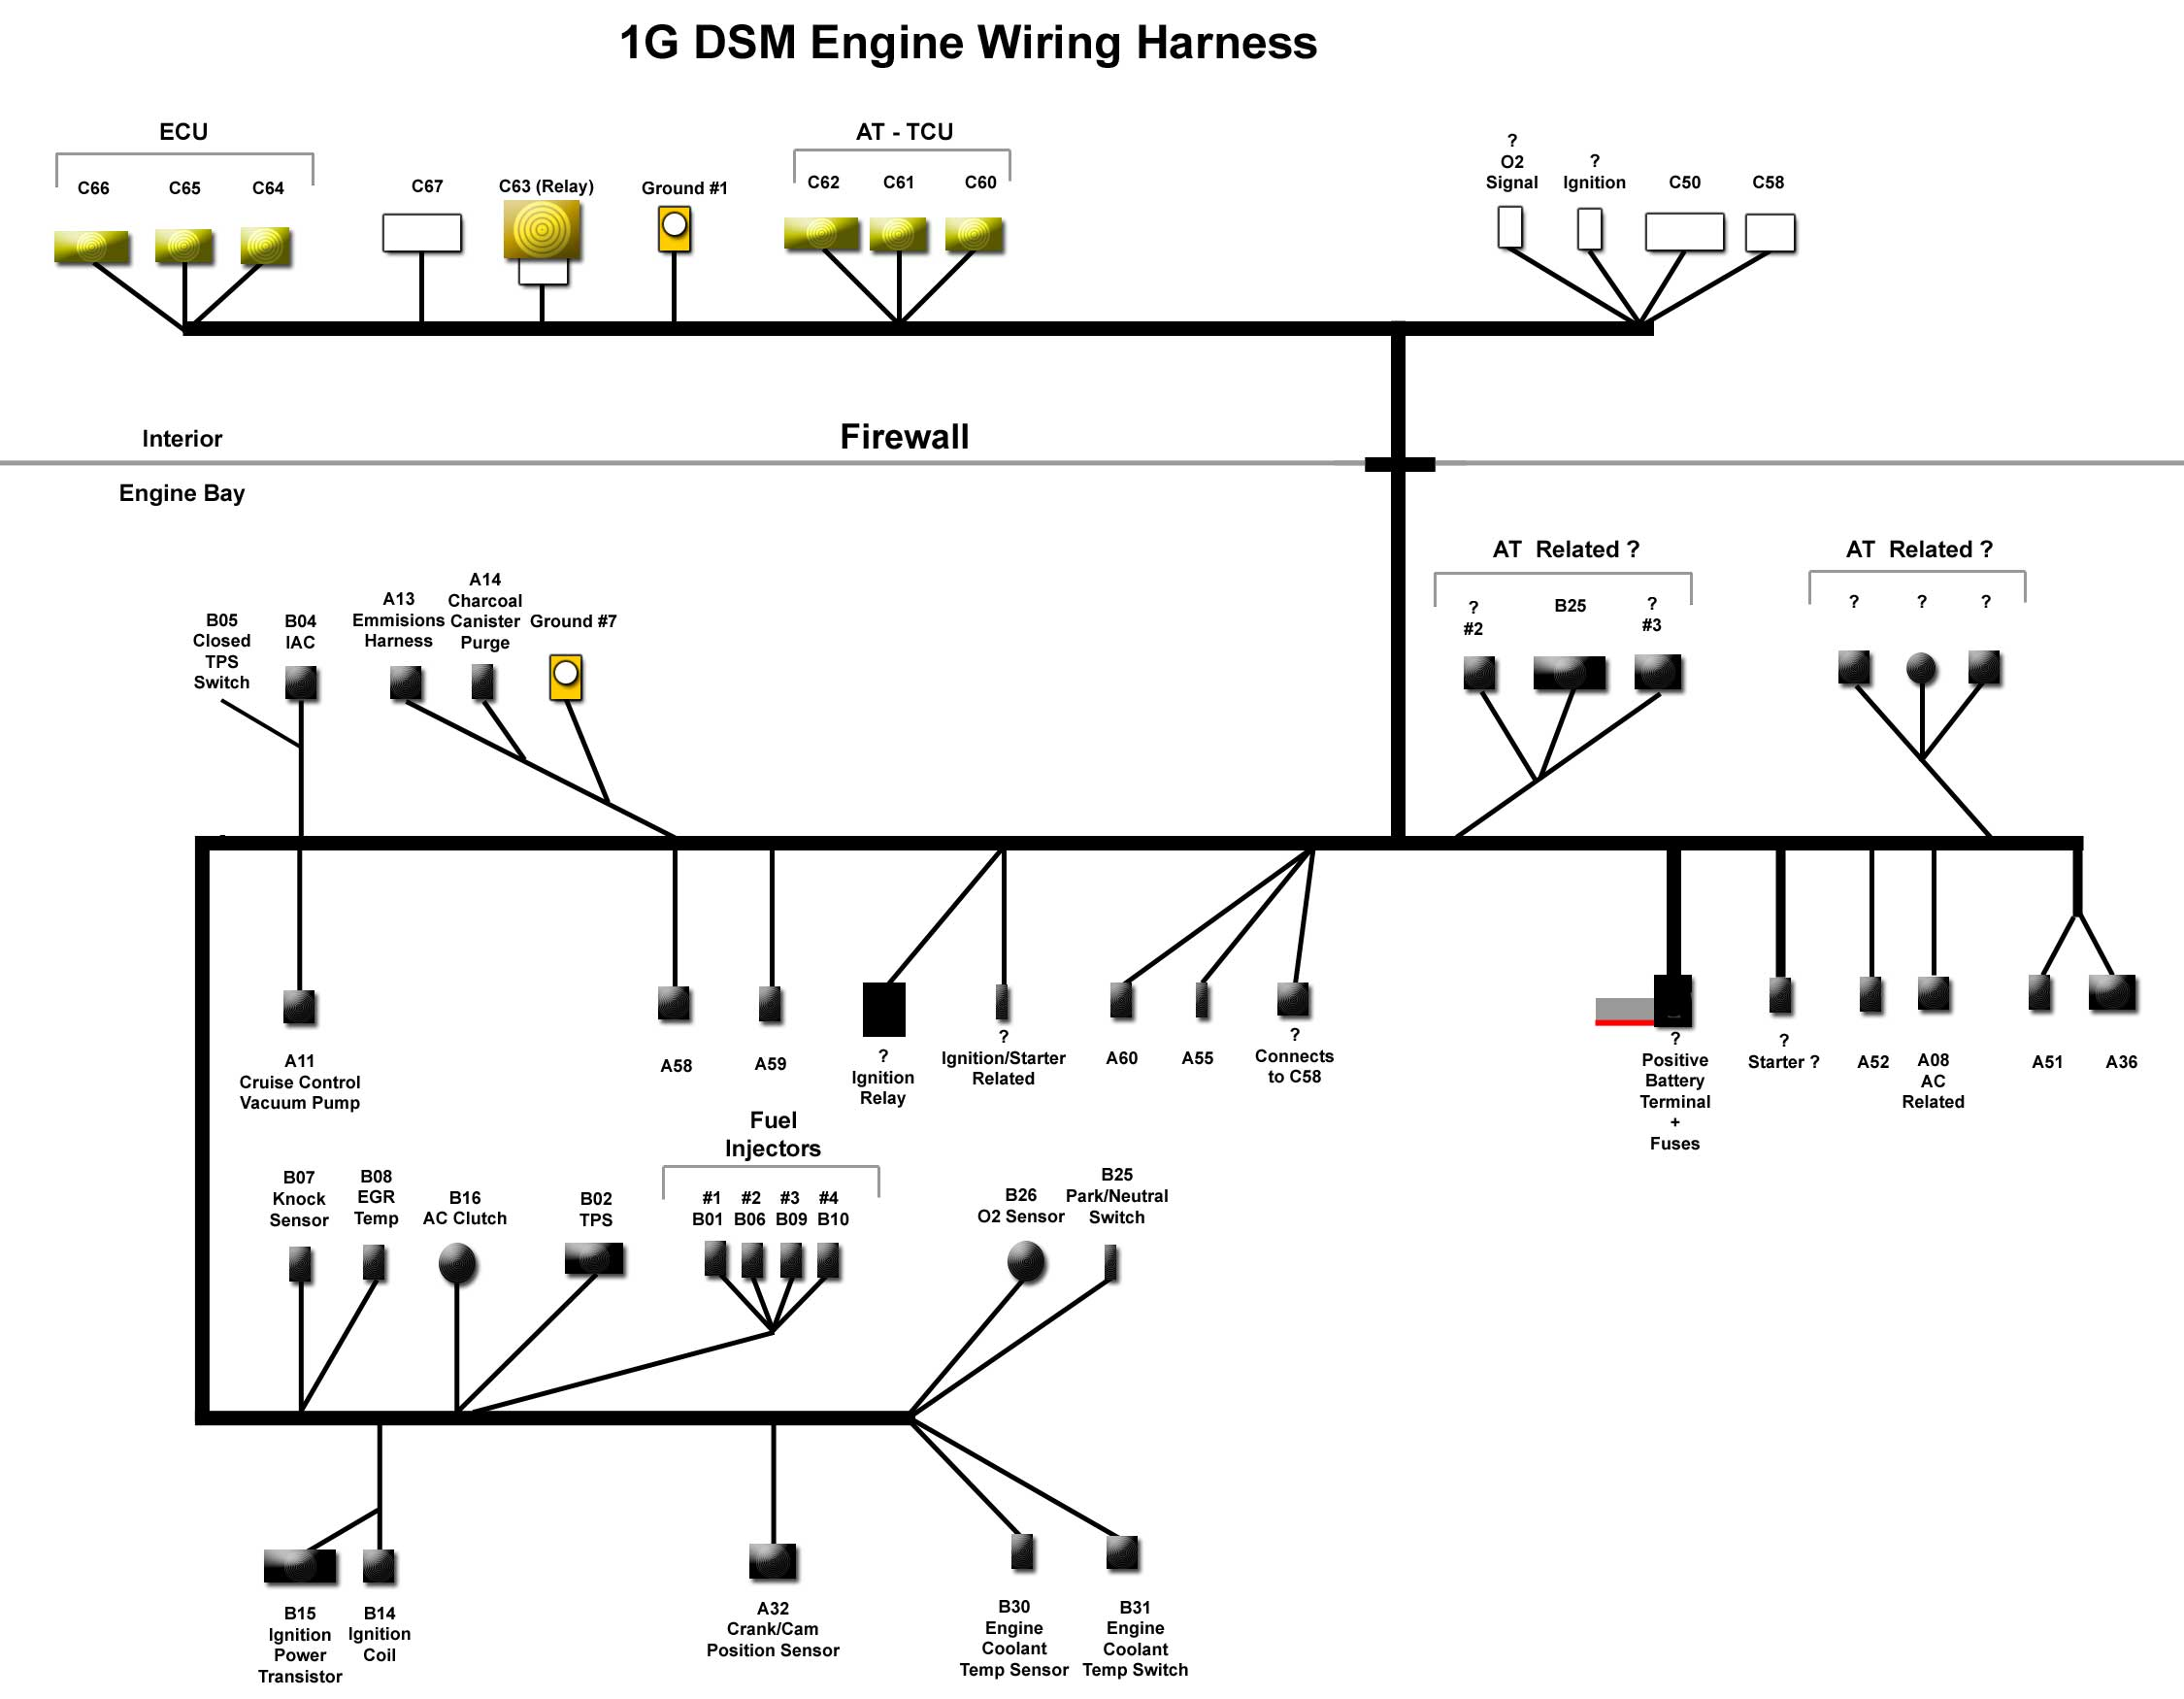 1G DSM EngineHarness wiring loom diagram 1 2wire loom \u2022 wiring diagrams j squared co 1986 Toyota SR5 Fuel Injector Wire Harness at reclaimingppi.co